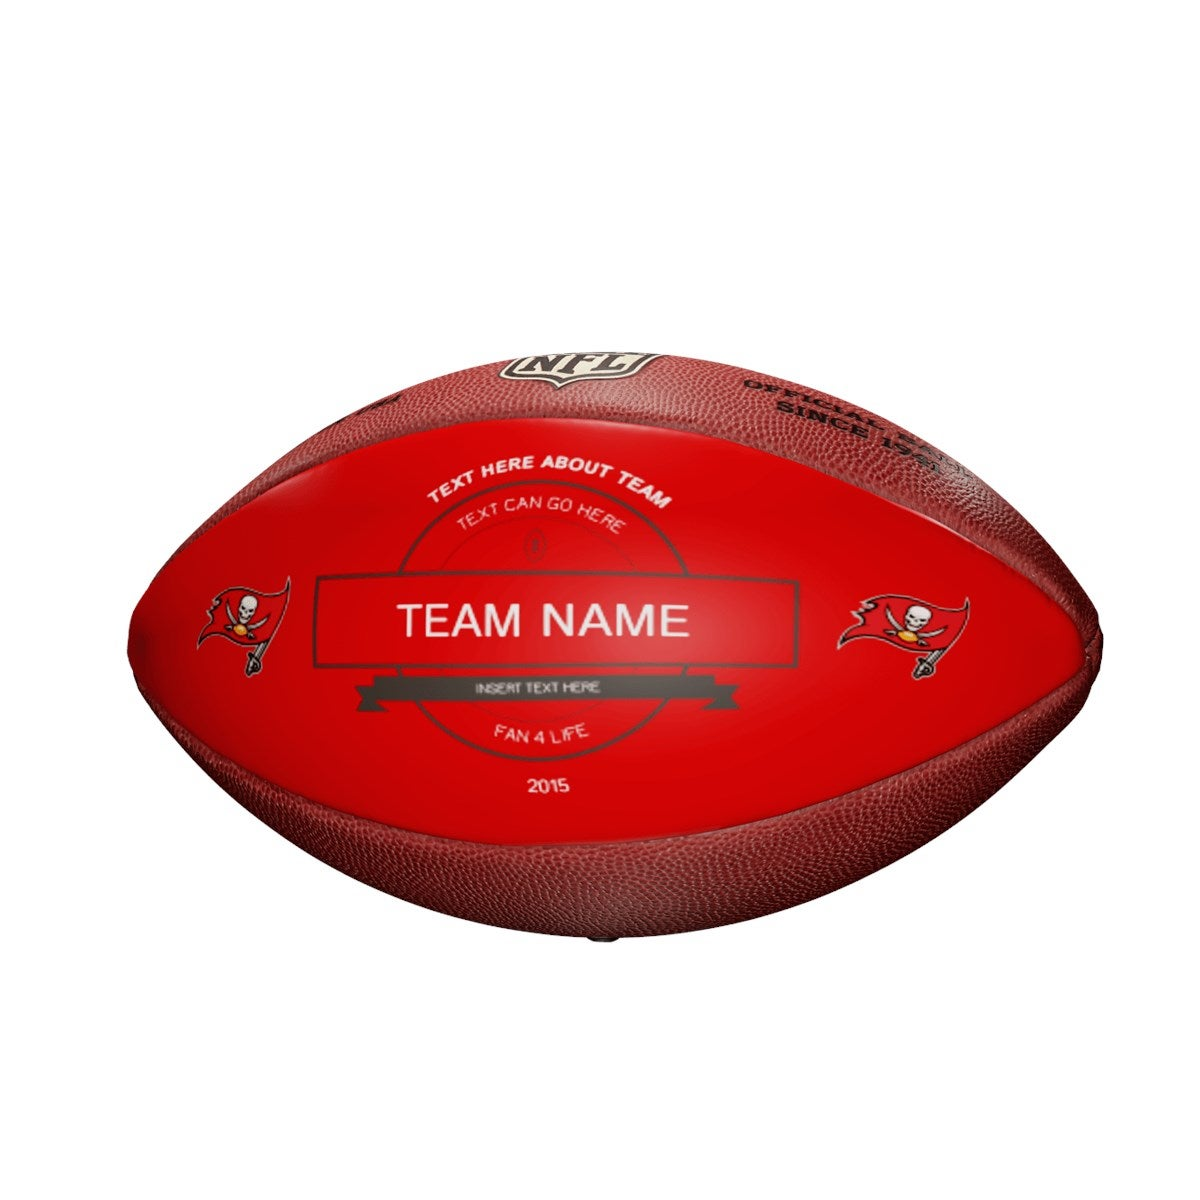 Personalized NFL Tampa Bay Buccaneers Ultimate Fan Football